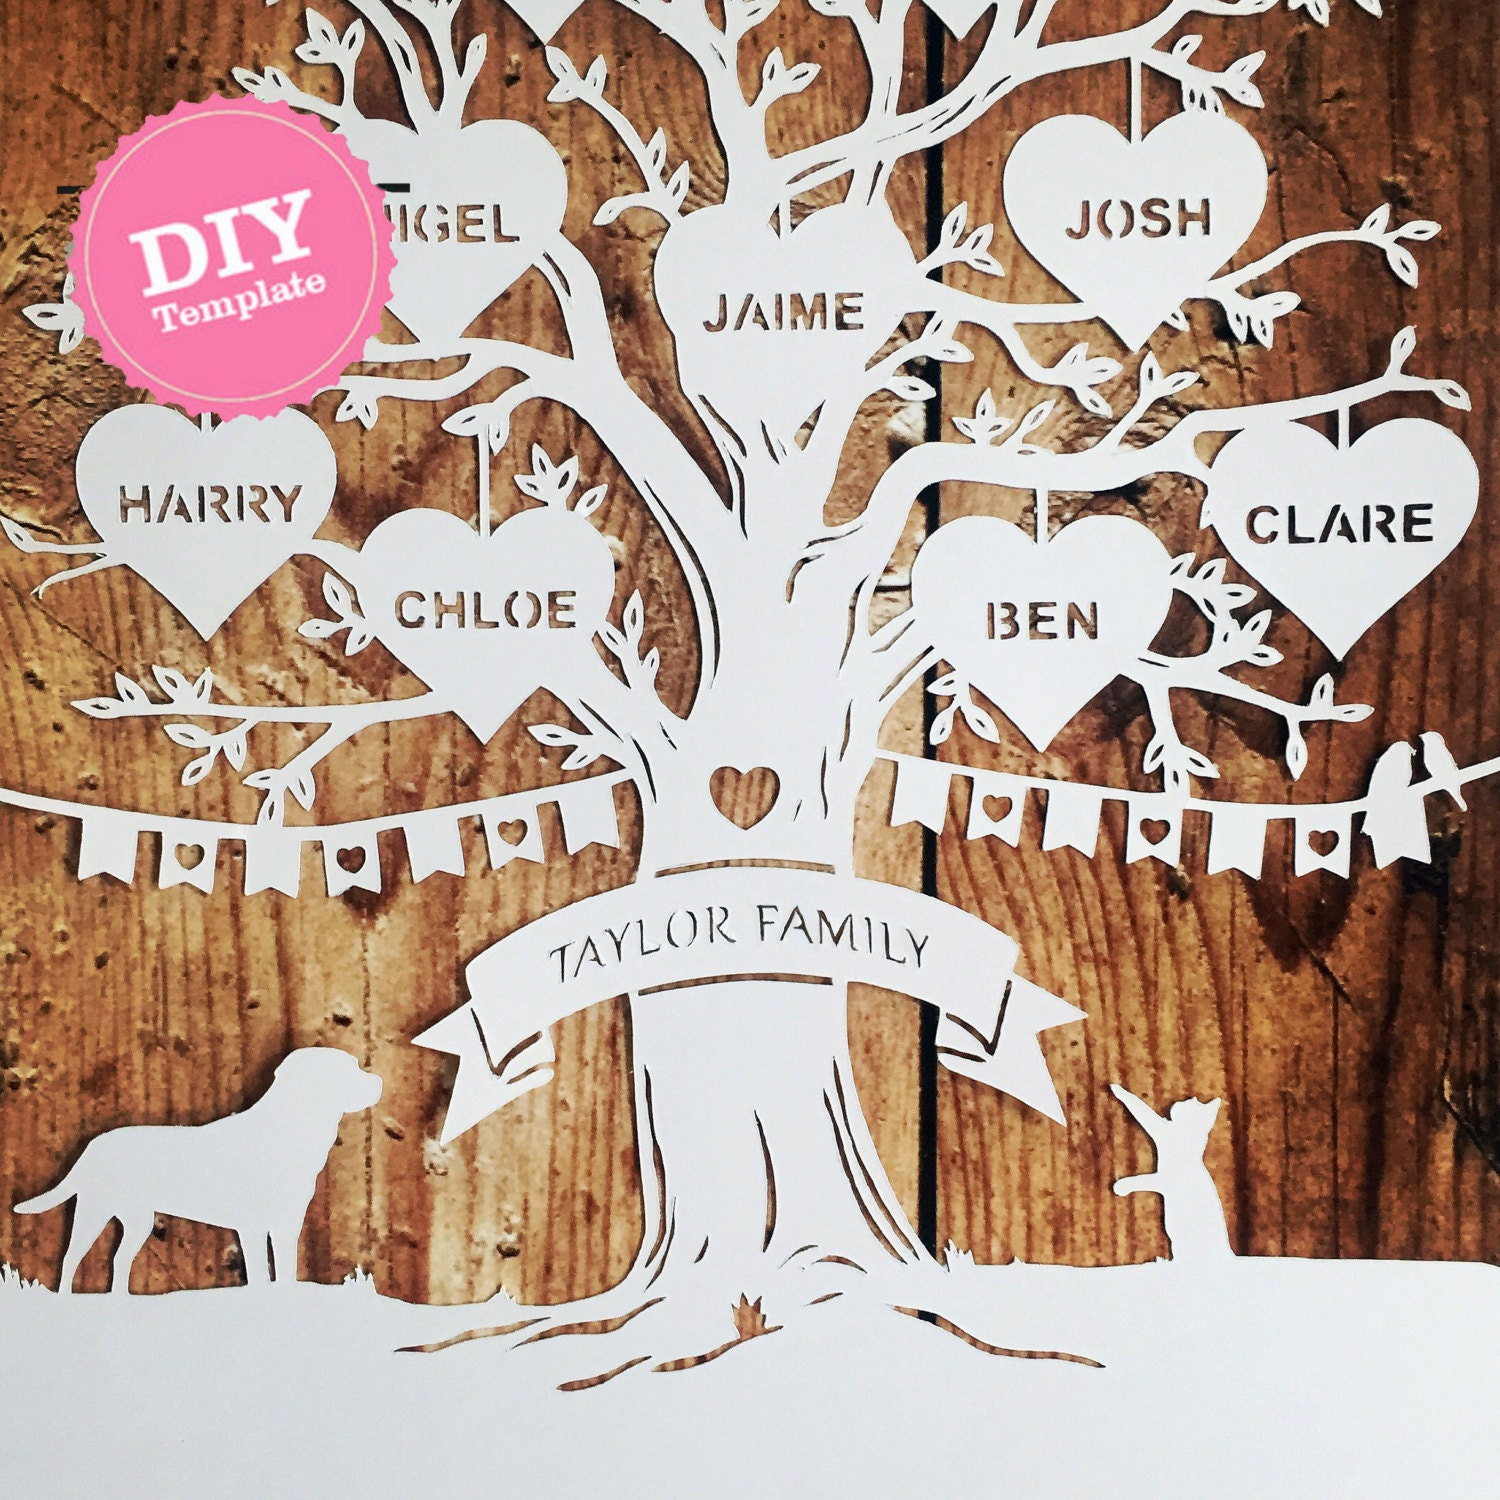 Diy family tree papercutting template papercut your own zoom solutioingenieria Image collections